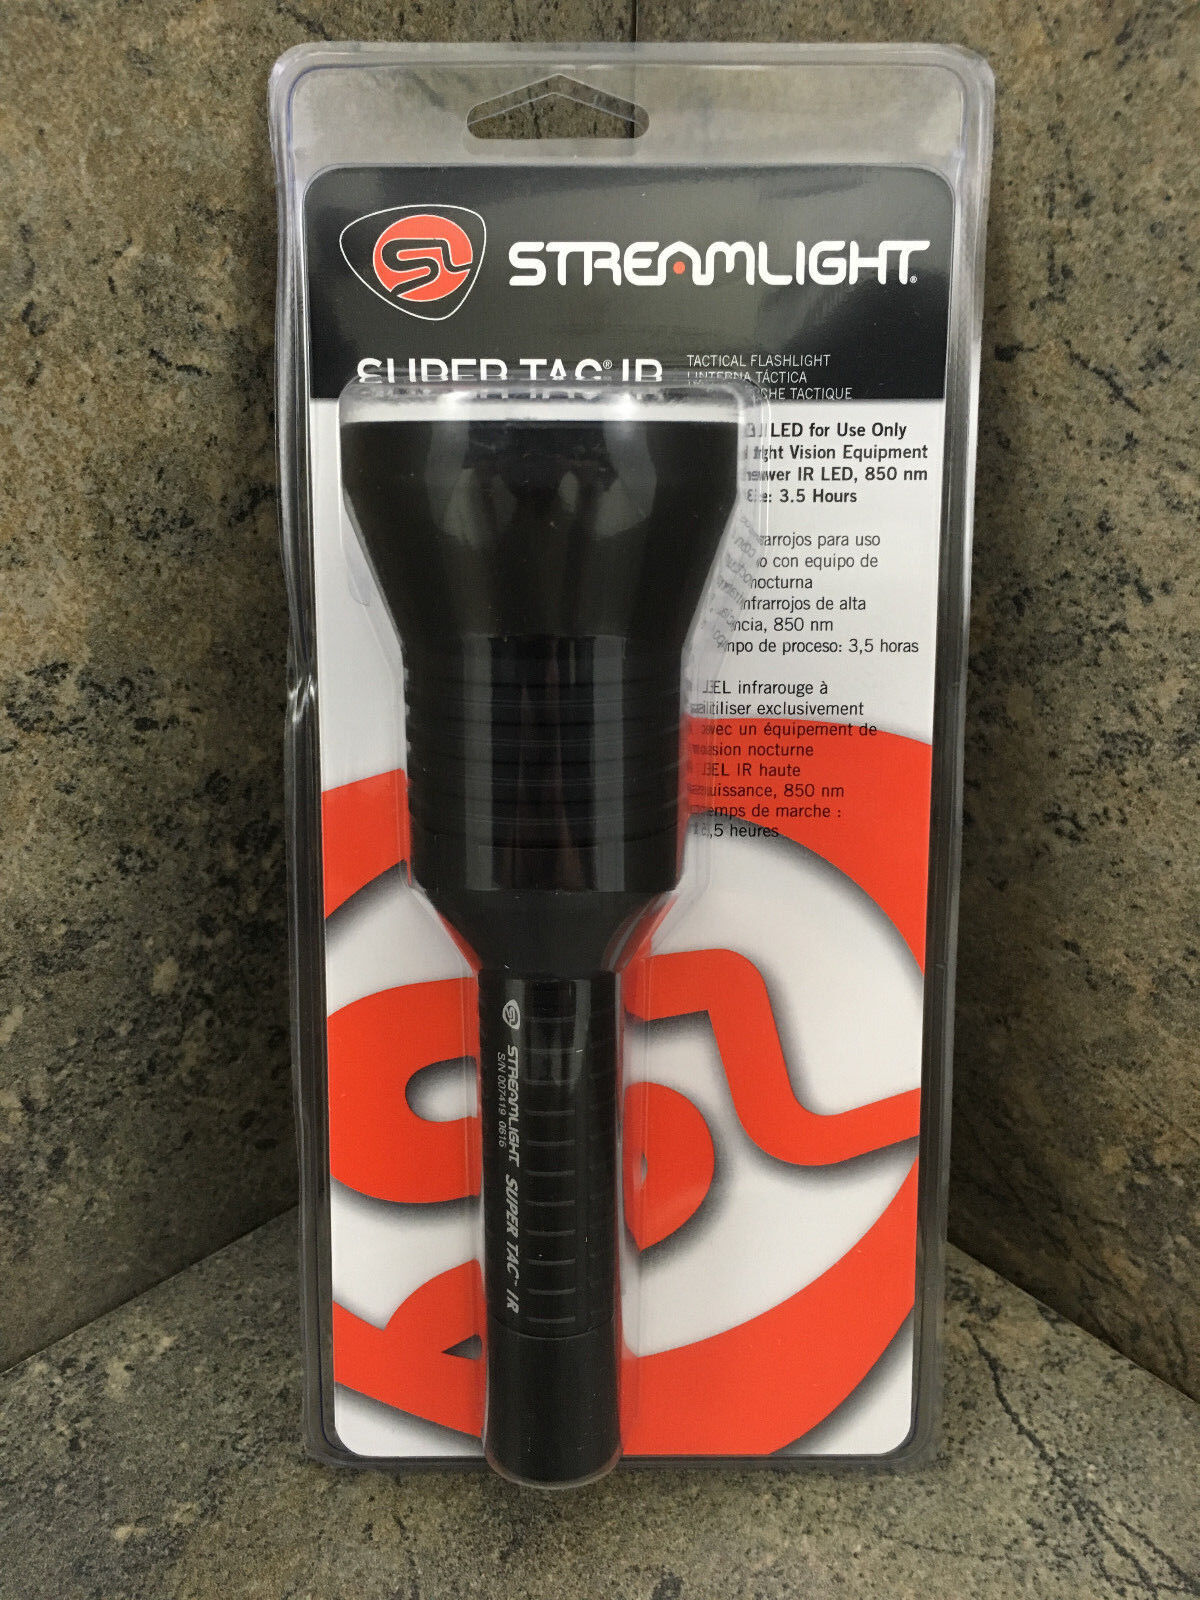 Streamlight 88704 Super TAC IR Long Range Infrared Active Il